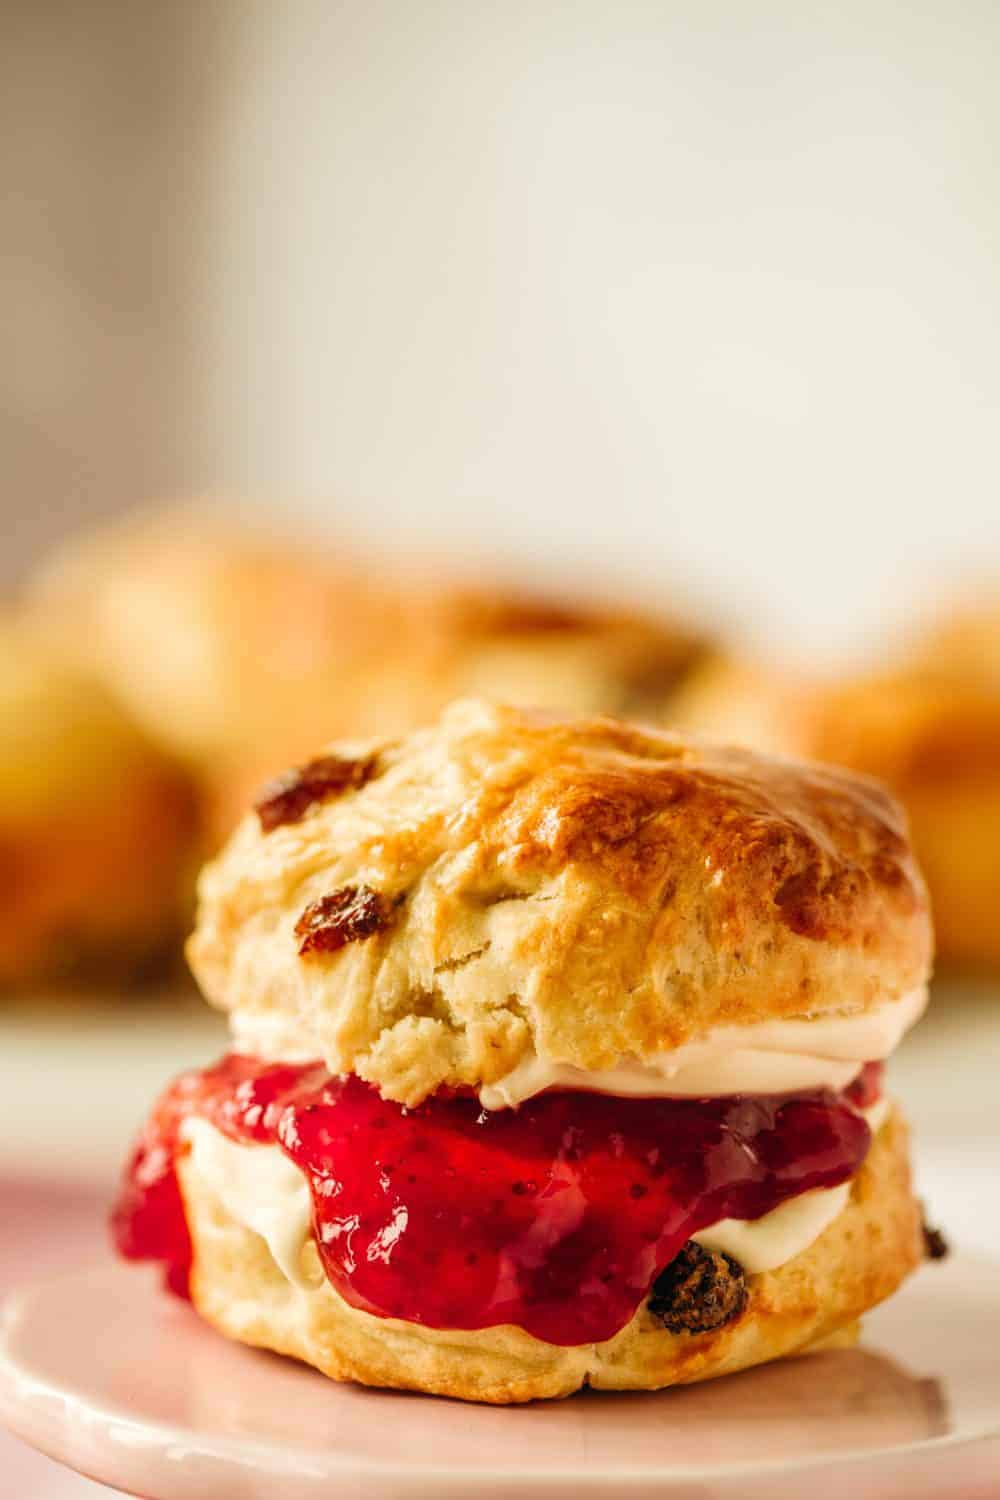 In the foreground is a scone that has been sliced in two and put back together. There is jam and cream dripping down the scone.